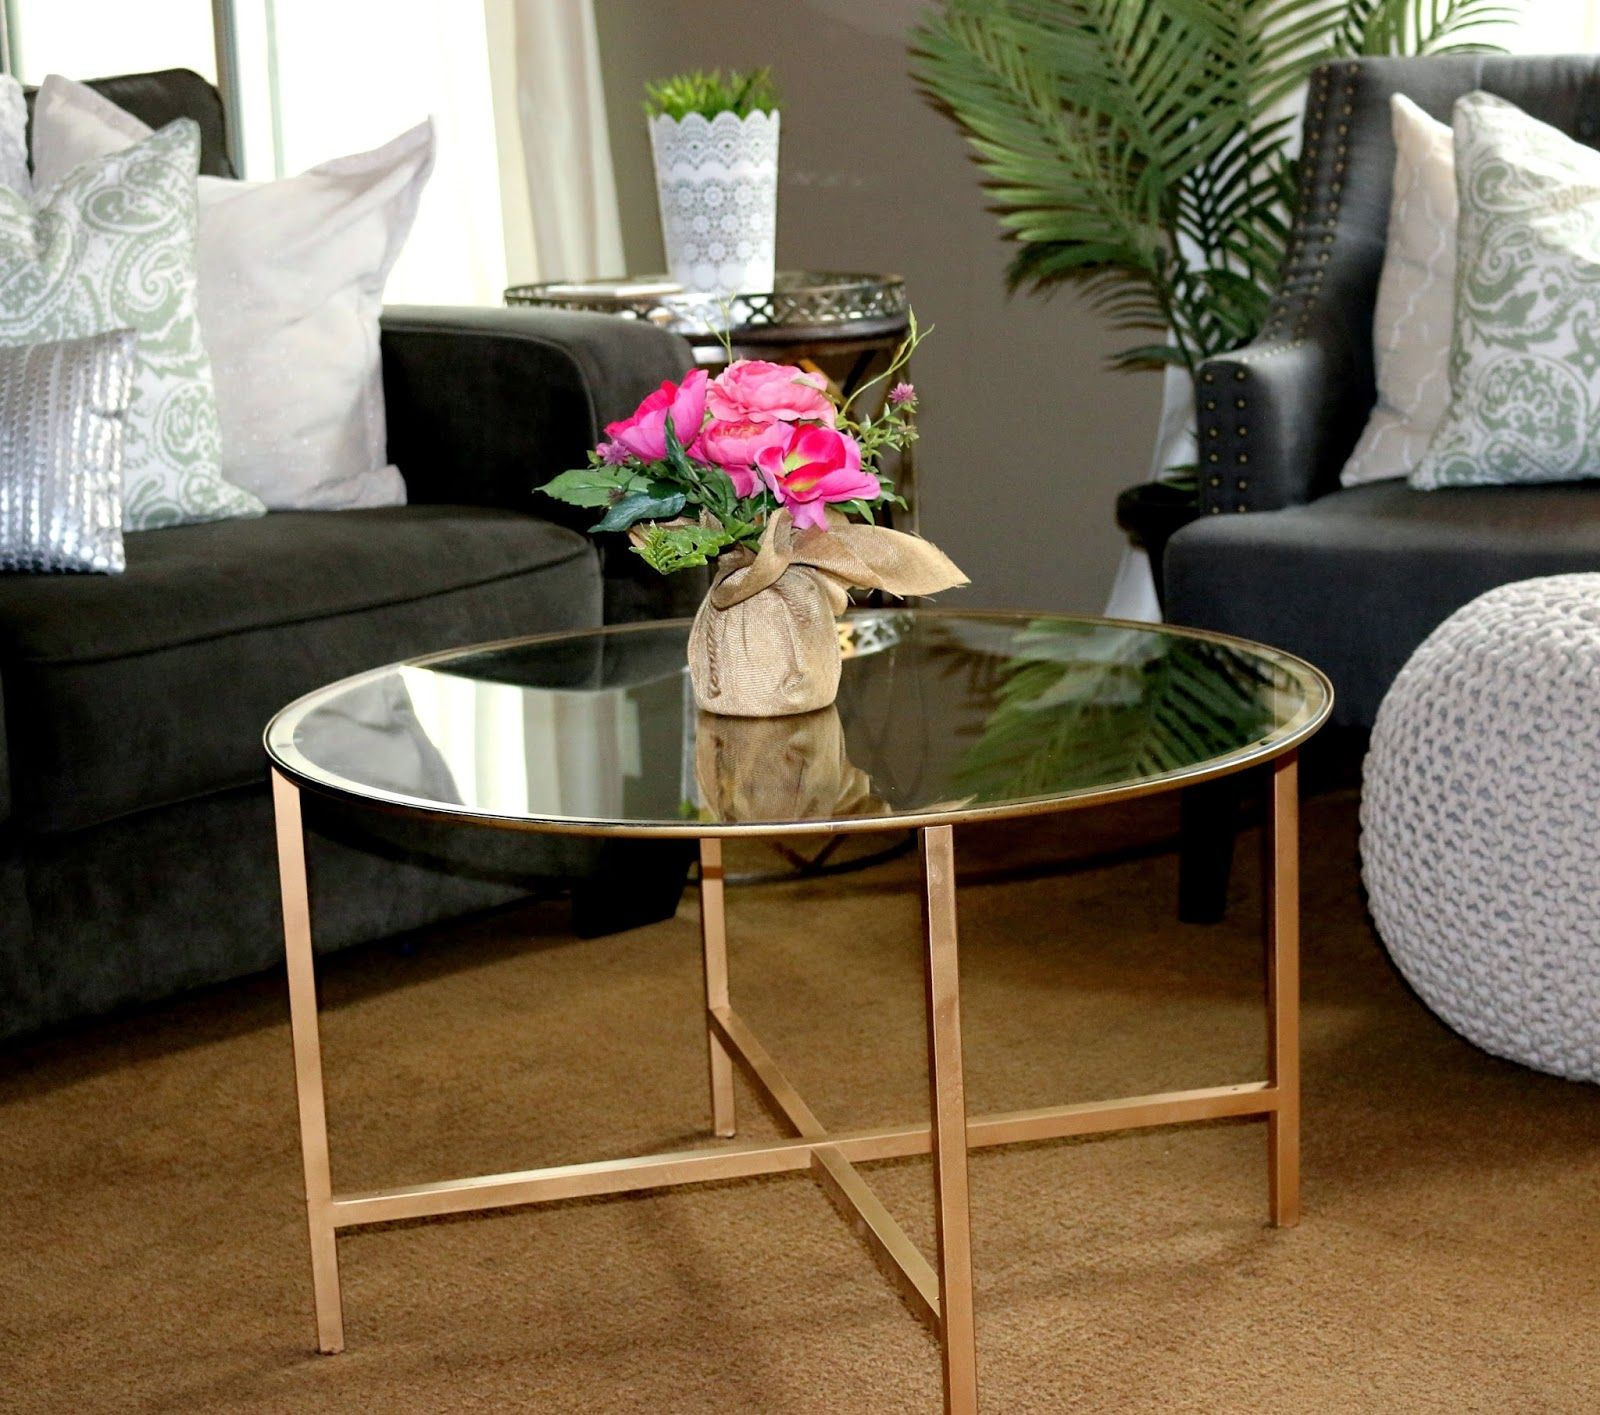 Living Room Table Ikea Vittsjö Coffee Table Blackbrown Glass  Coffee Rounding And .